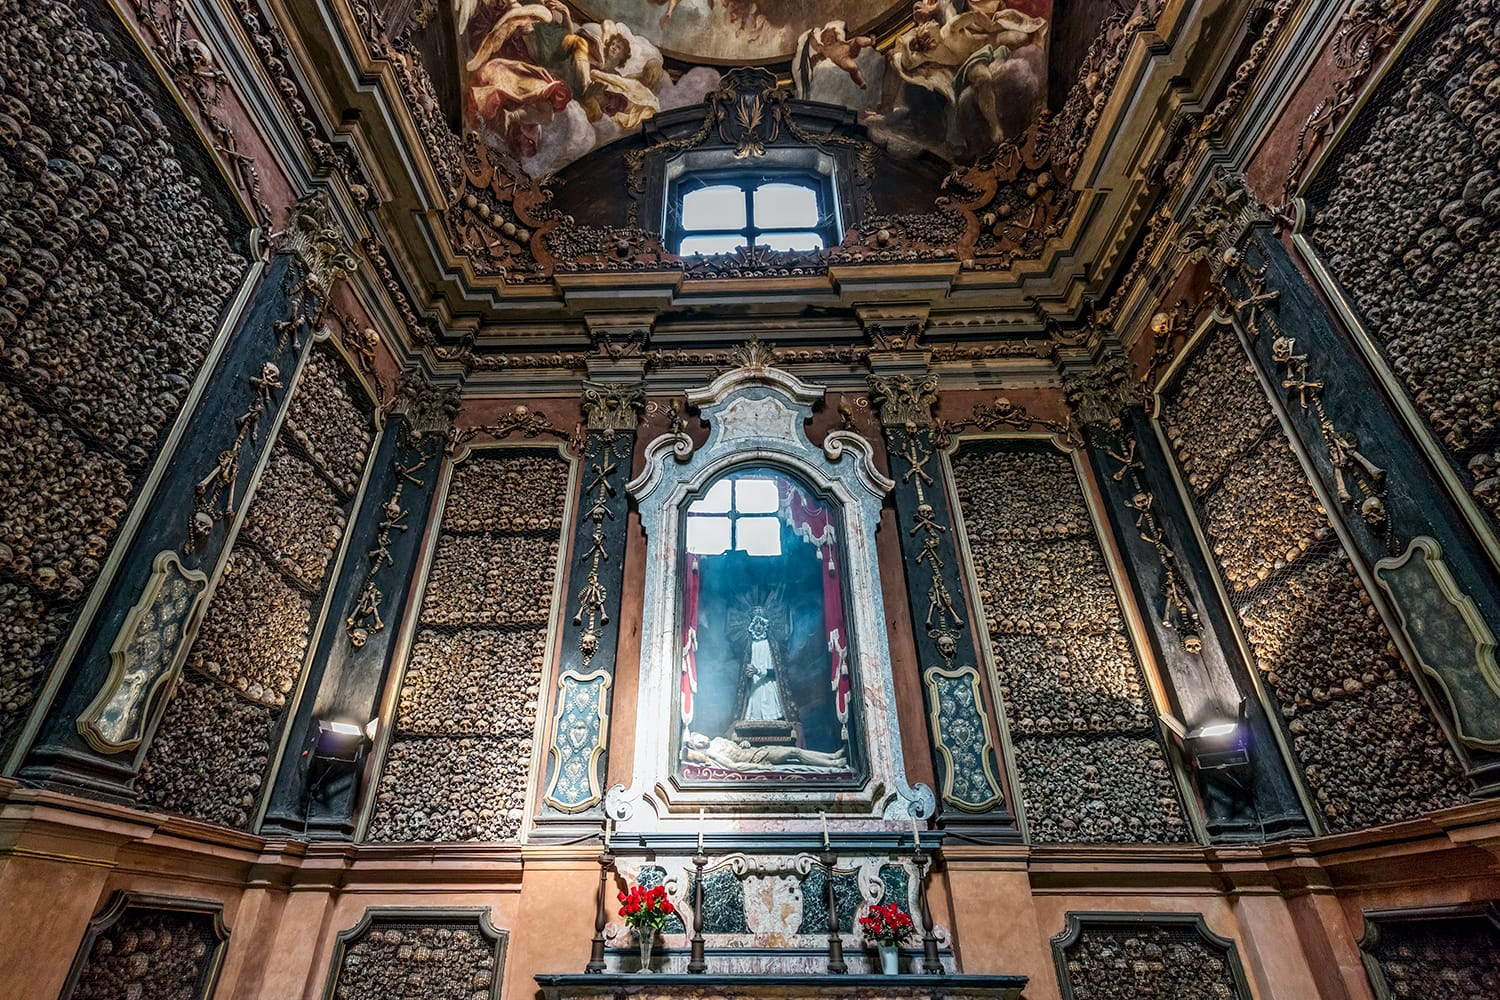 San Bernardino alle Ossa is a church in Milan, known for its ossuary, decorated with human skulls and bones